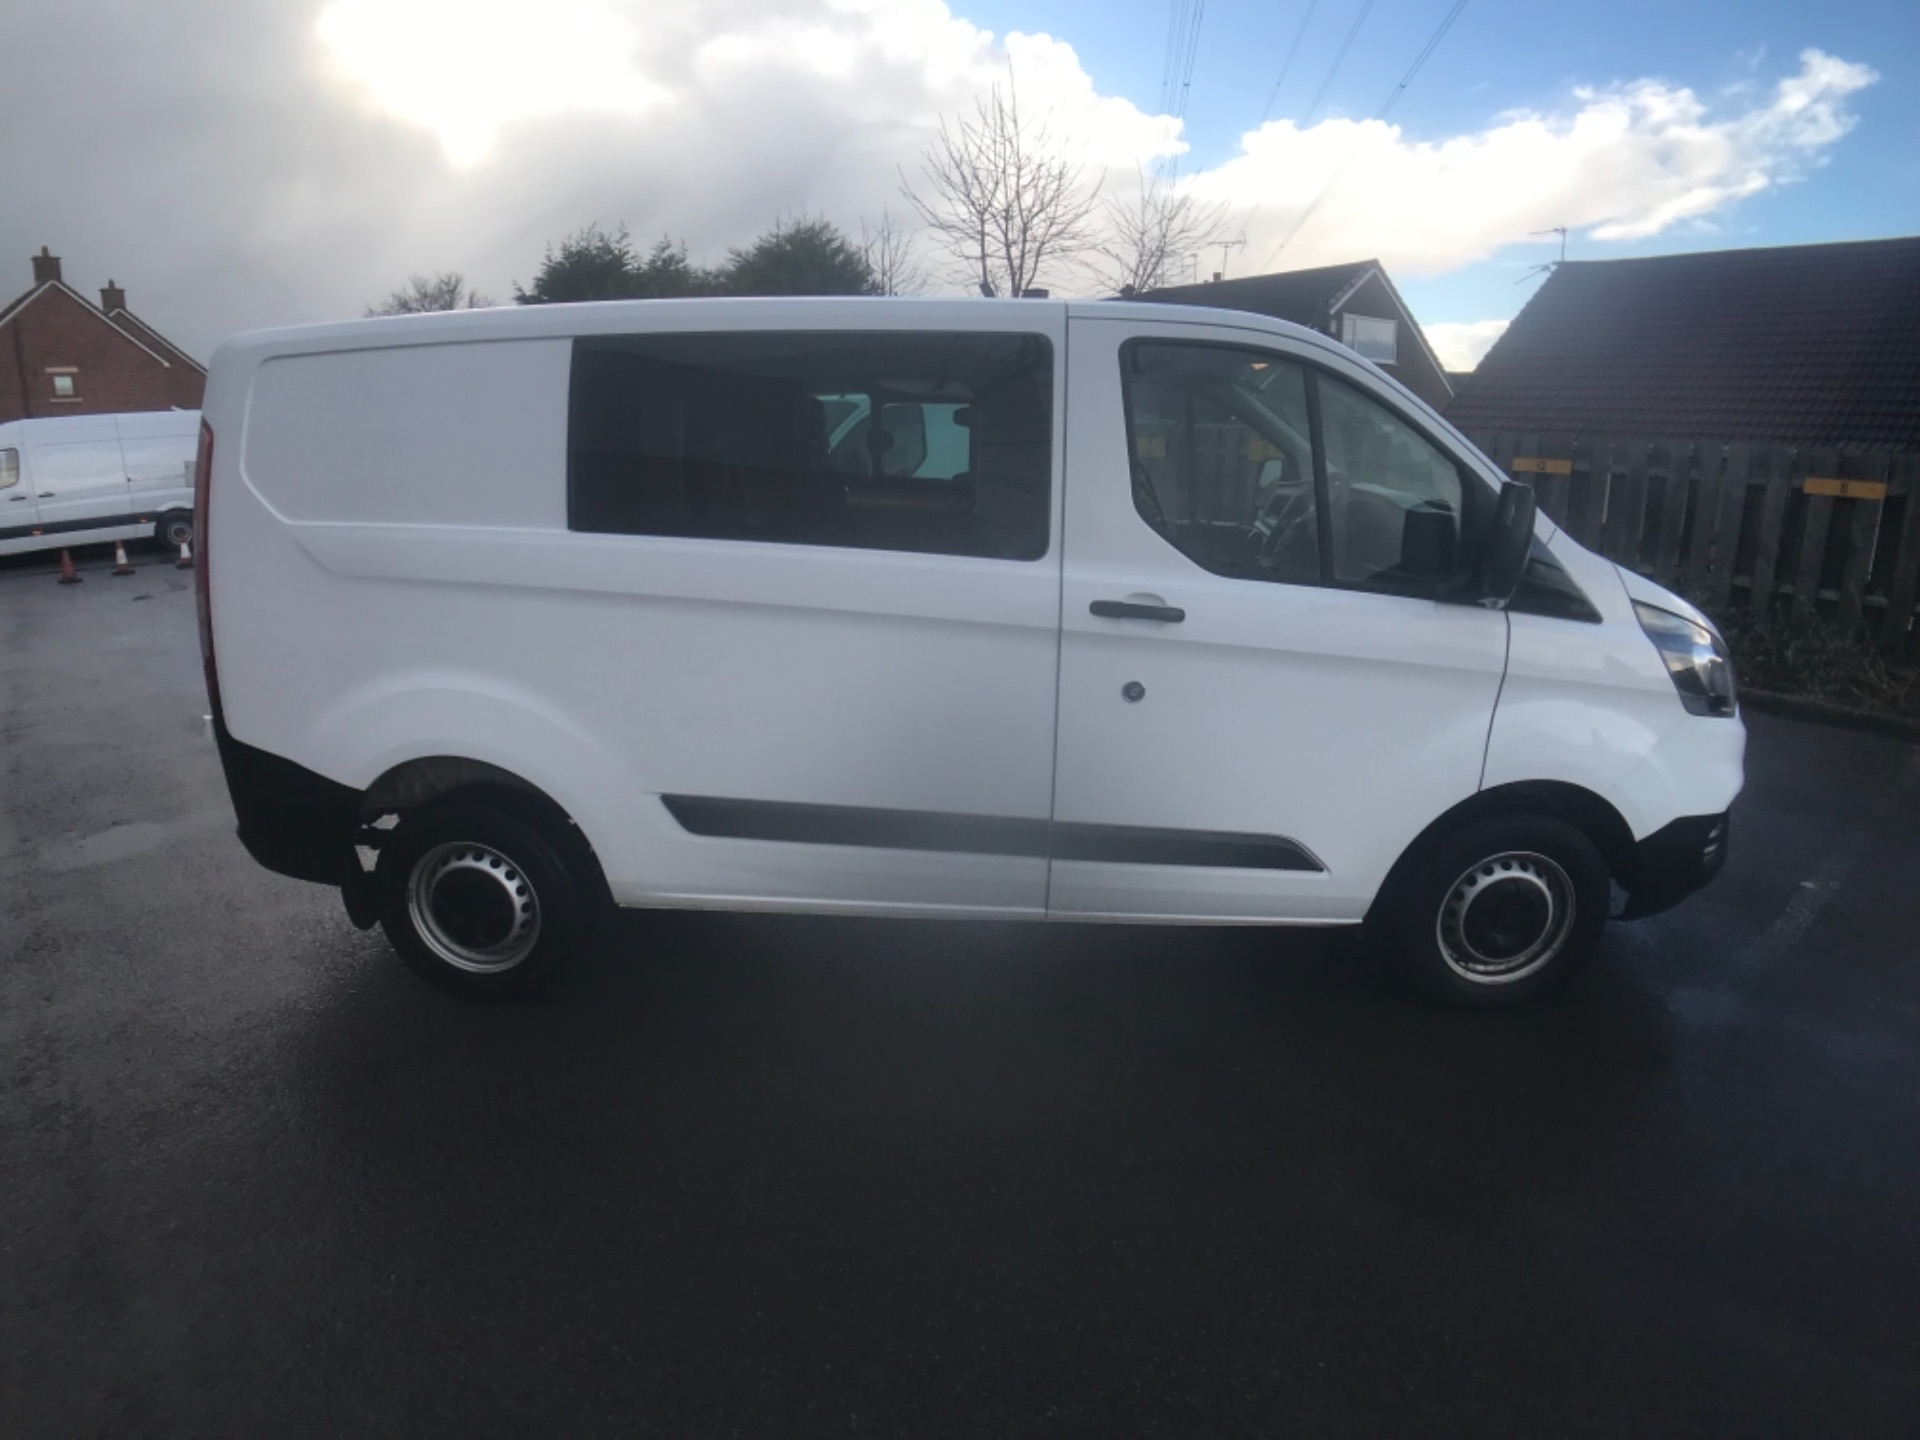 2018 Ford Transit Custom 300 2.0 Tdci 105Ps Low Roof D/Cab Van EURO 6 (HT68ANR) Image 8